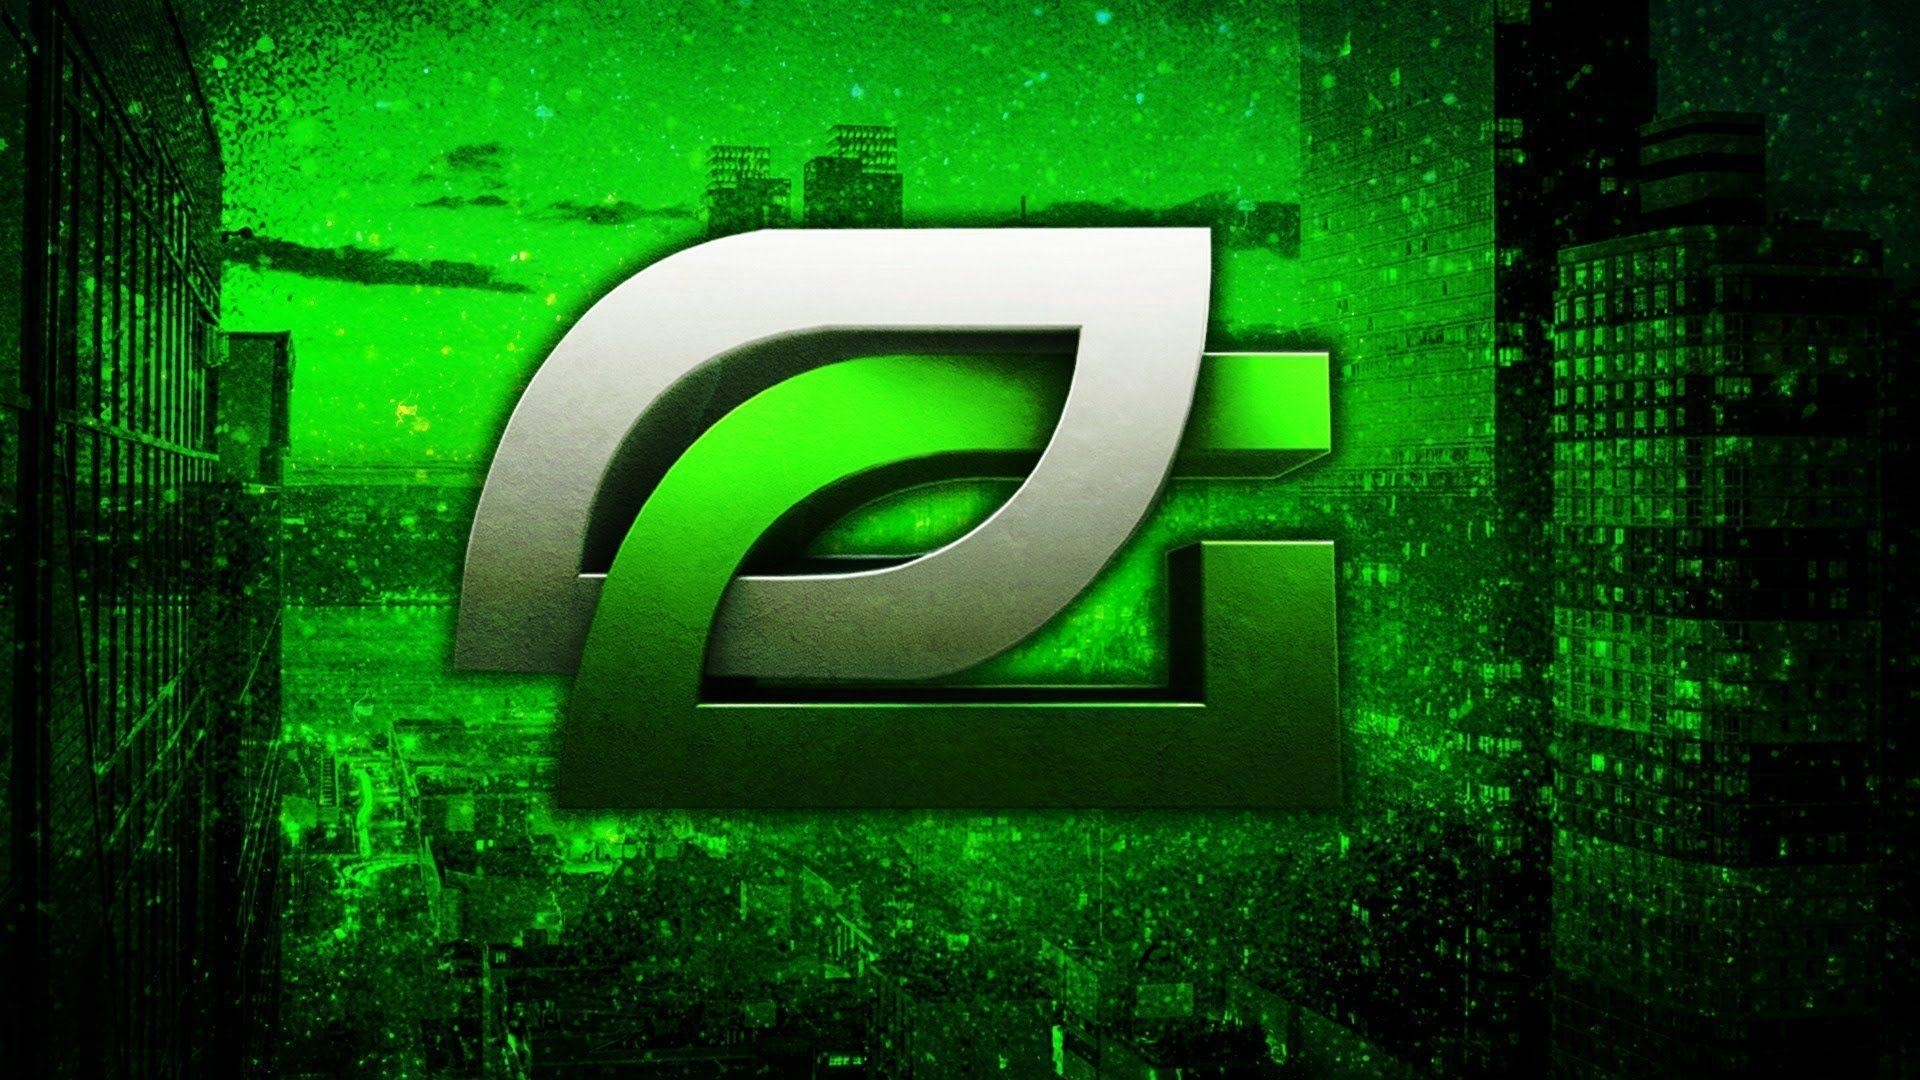 optic gaming wallpapers 2017 - wallpaper cave